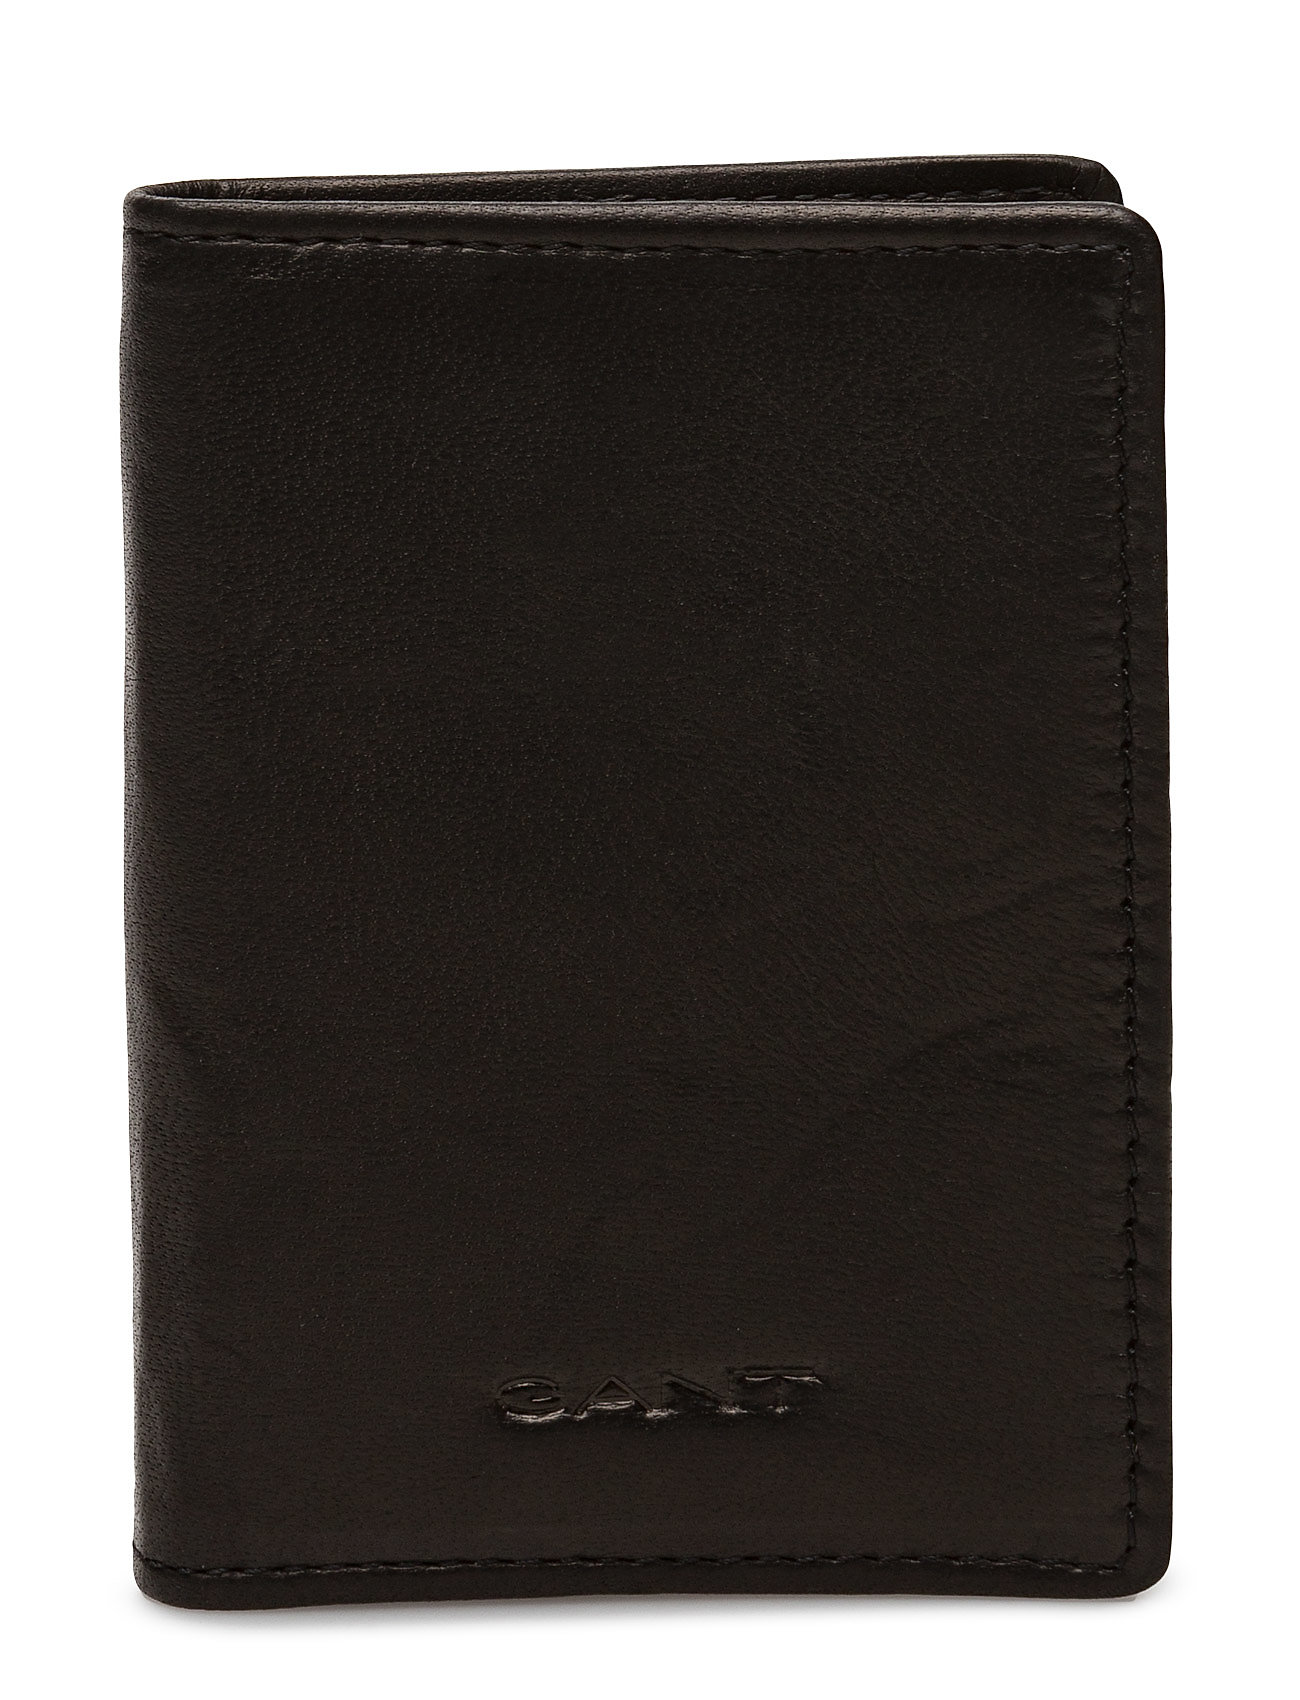 GANT O1.LEATHER DOUBLE CARD HOLDER